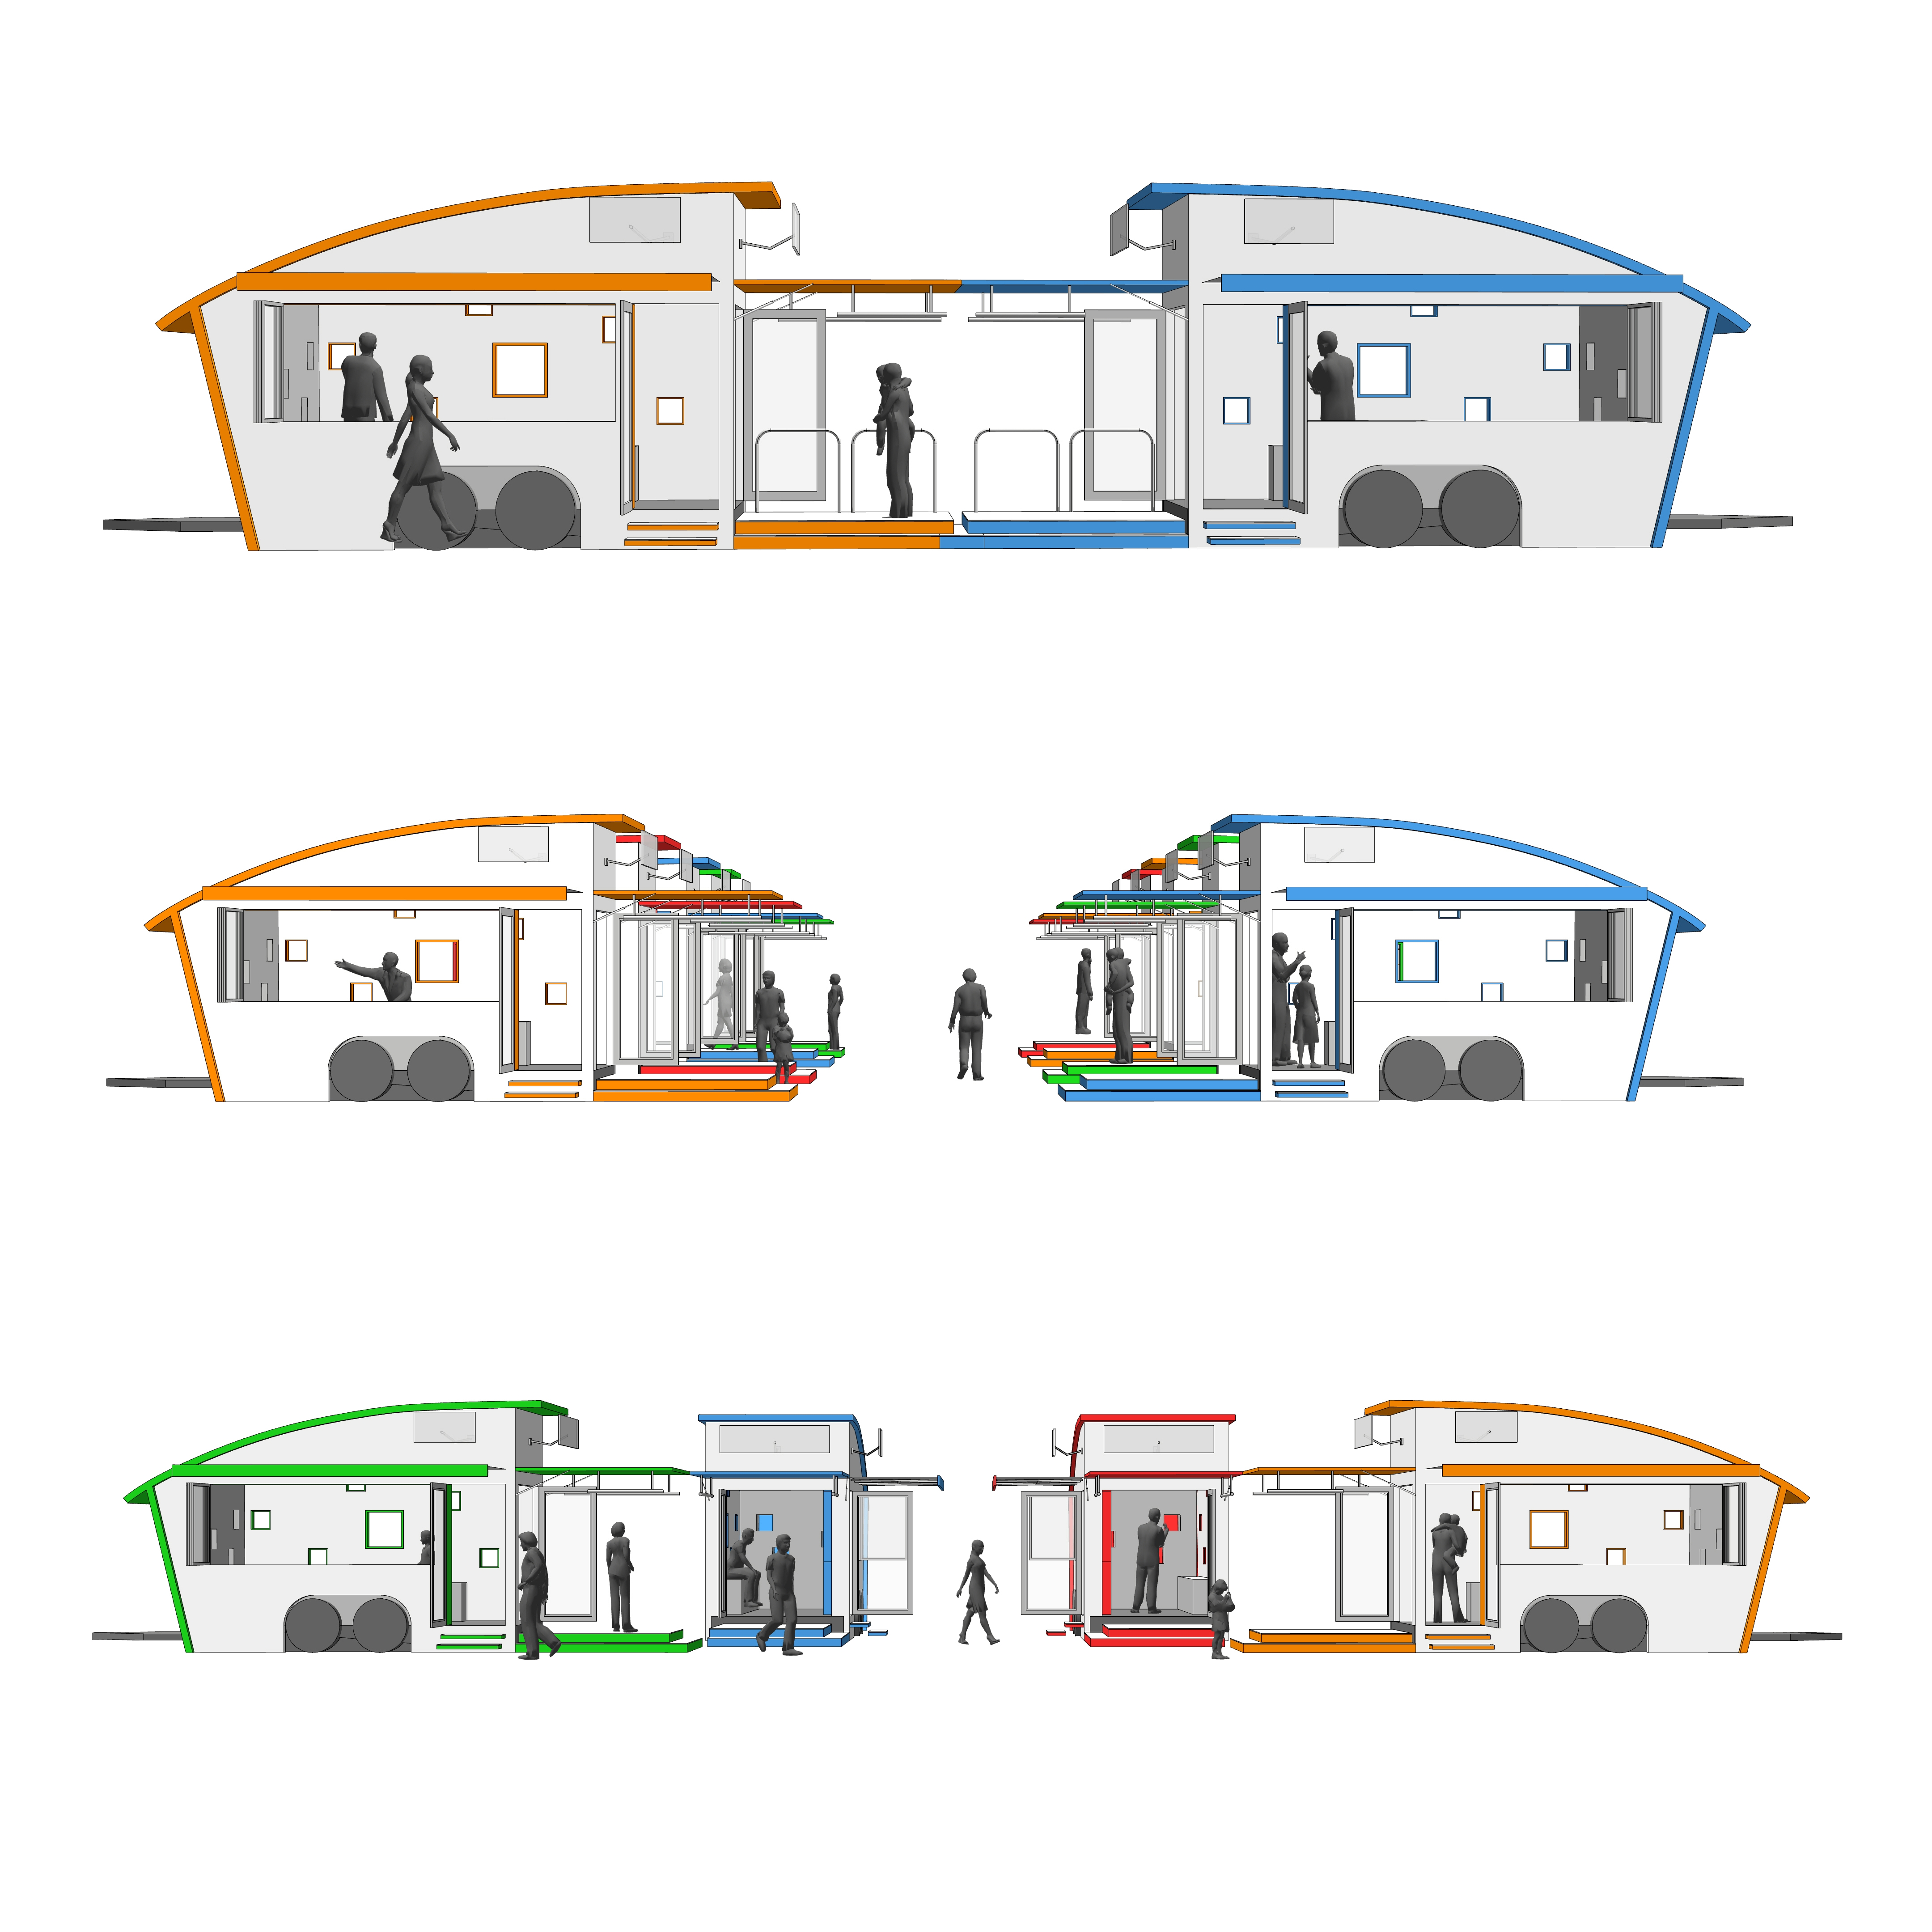 PEOPLE'S RETAIL - mobile tiny retail pods